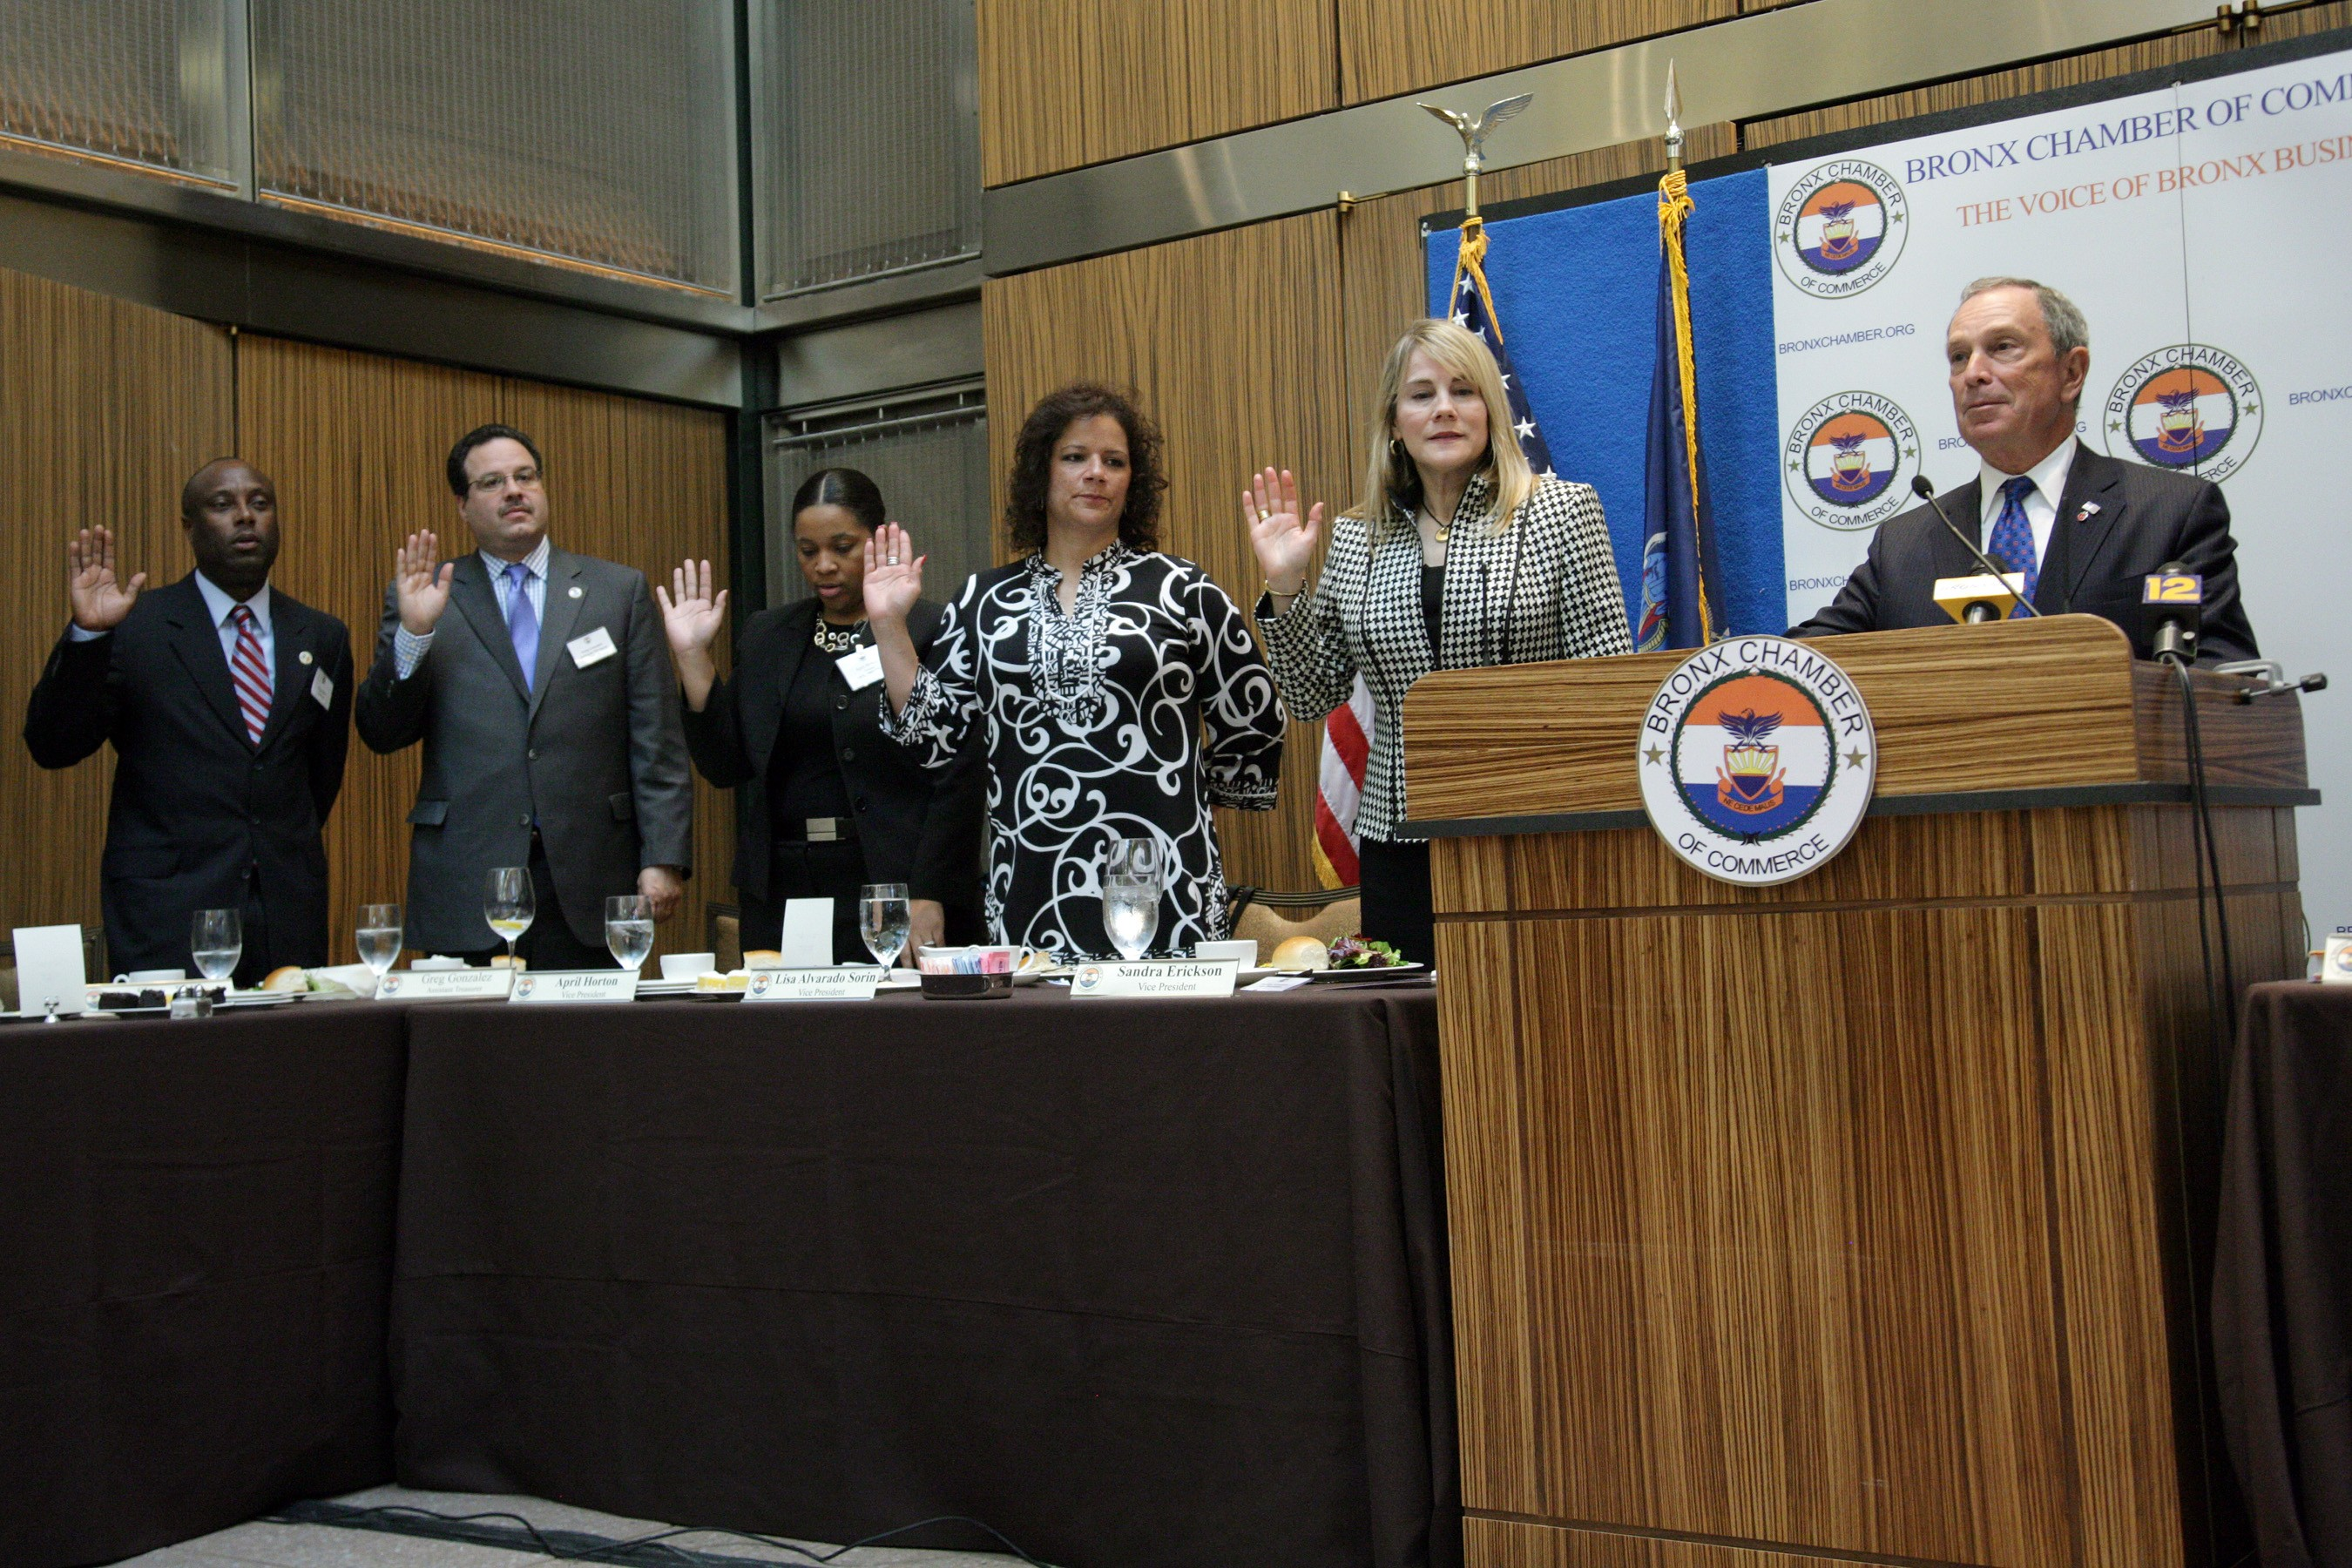 New leaders swearing-in ceremony.